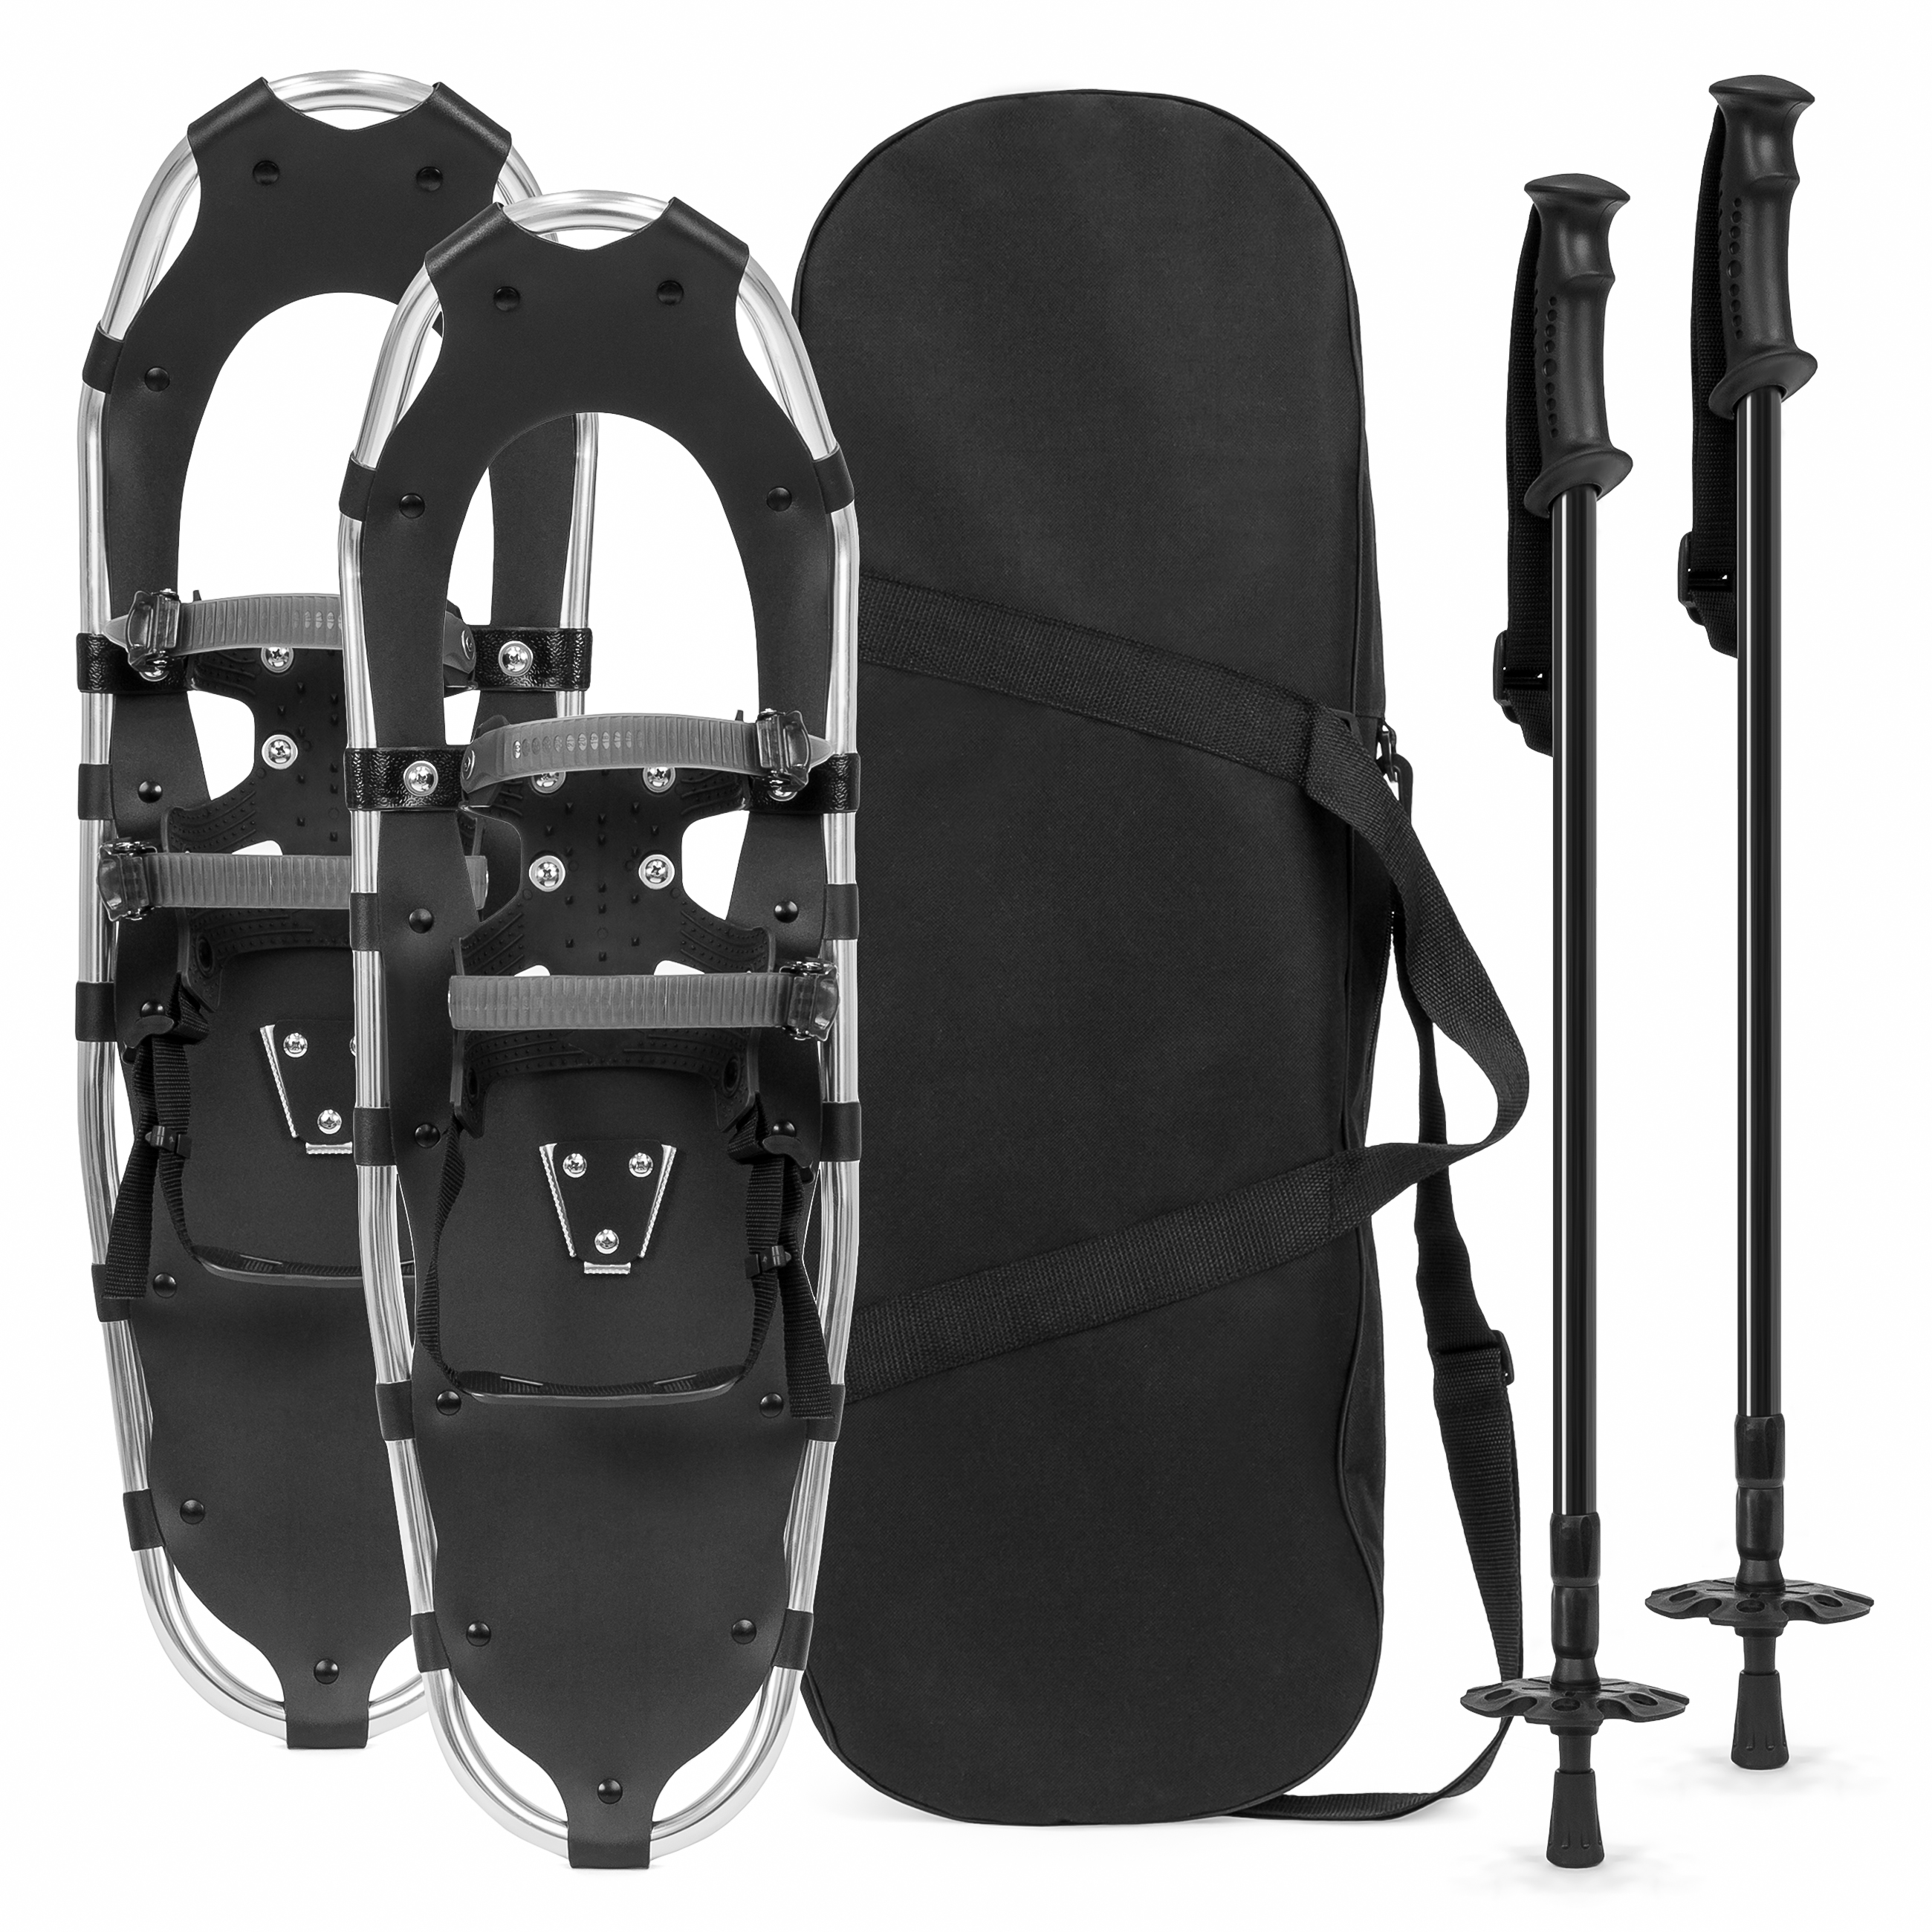 Best Choice Products 25in Unisex Aluminum Terrain Snowshoes Set w/ 2 Adjustable Trekking Poles and Carrying Bag - Silver